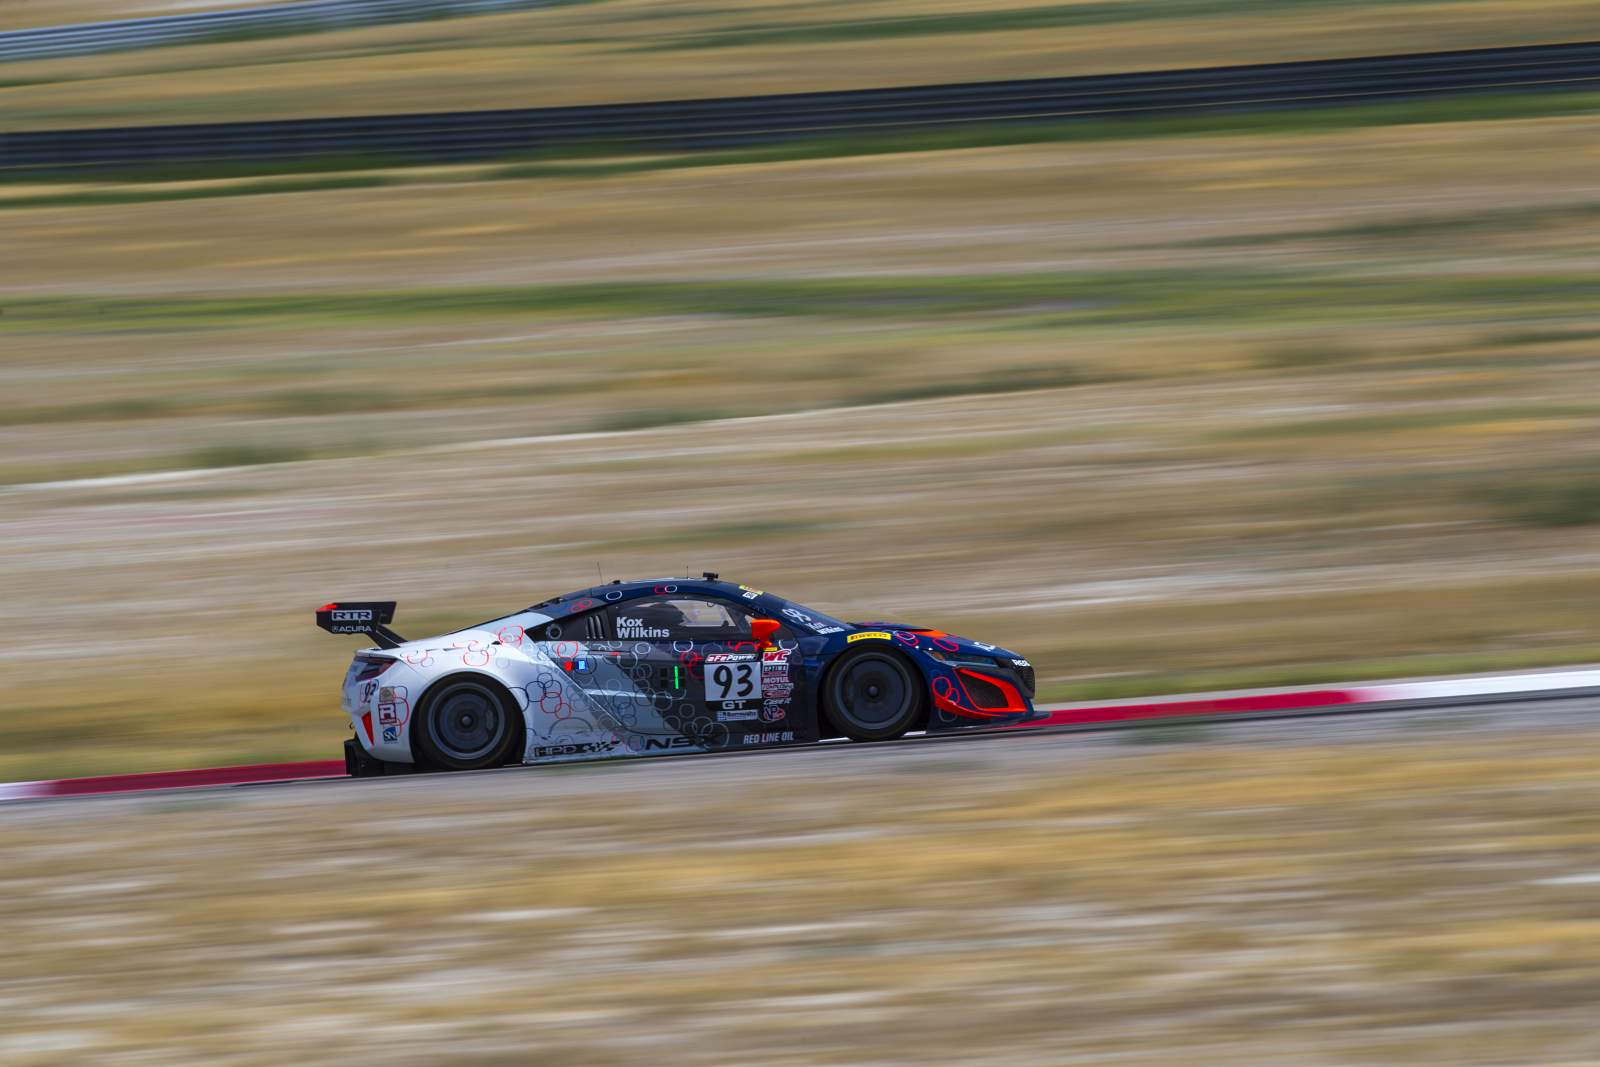 peter-kox-realtime-racing-pirelli-world-challenge-utah-motorsport-campus--180